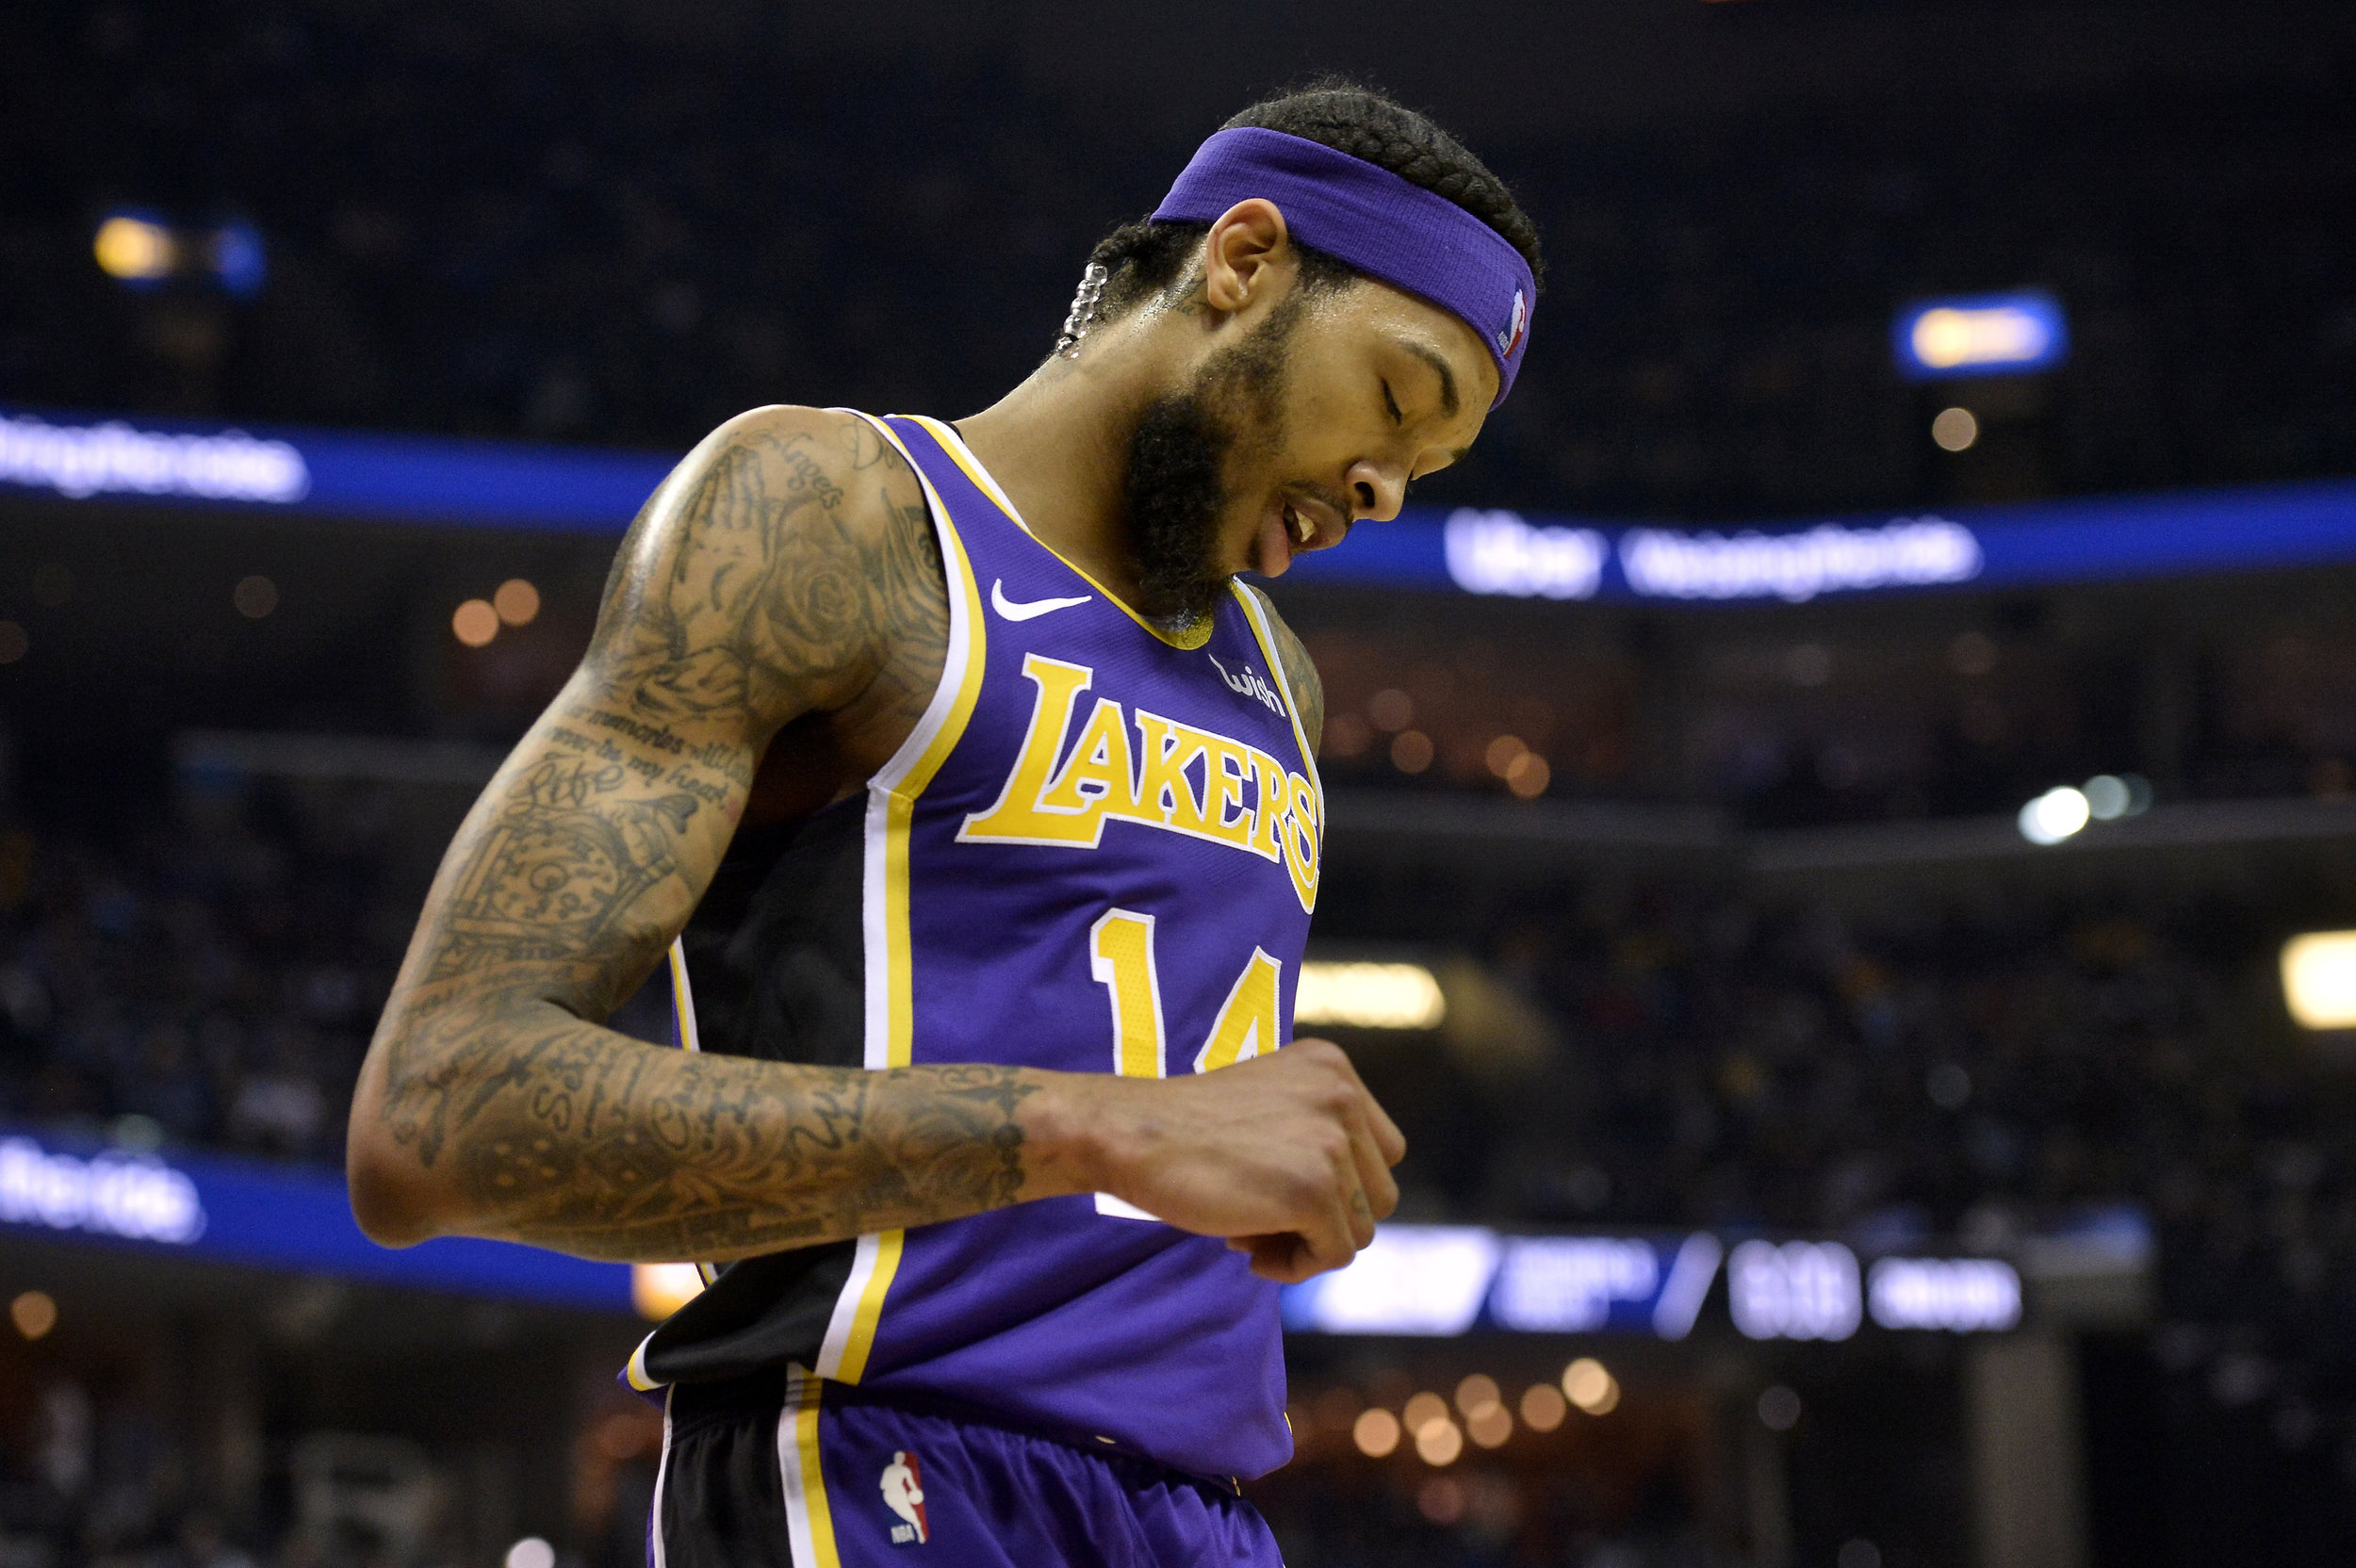 In this Monday, Feb. 25, 2019, file photo, Los Angeles Lakers forward Brandon Ingram (14) plays in the first half of an NBA basketball game against the Memphis Grizzlies in Memphis, Tenn. Ingram will miss the rest of the season after being diagnosed with a deep venous thrombosis in his right arm, the Lakers announced Saturday, March 9, 2019. (AP Photo/Brandon Dill, File)